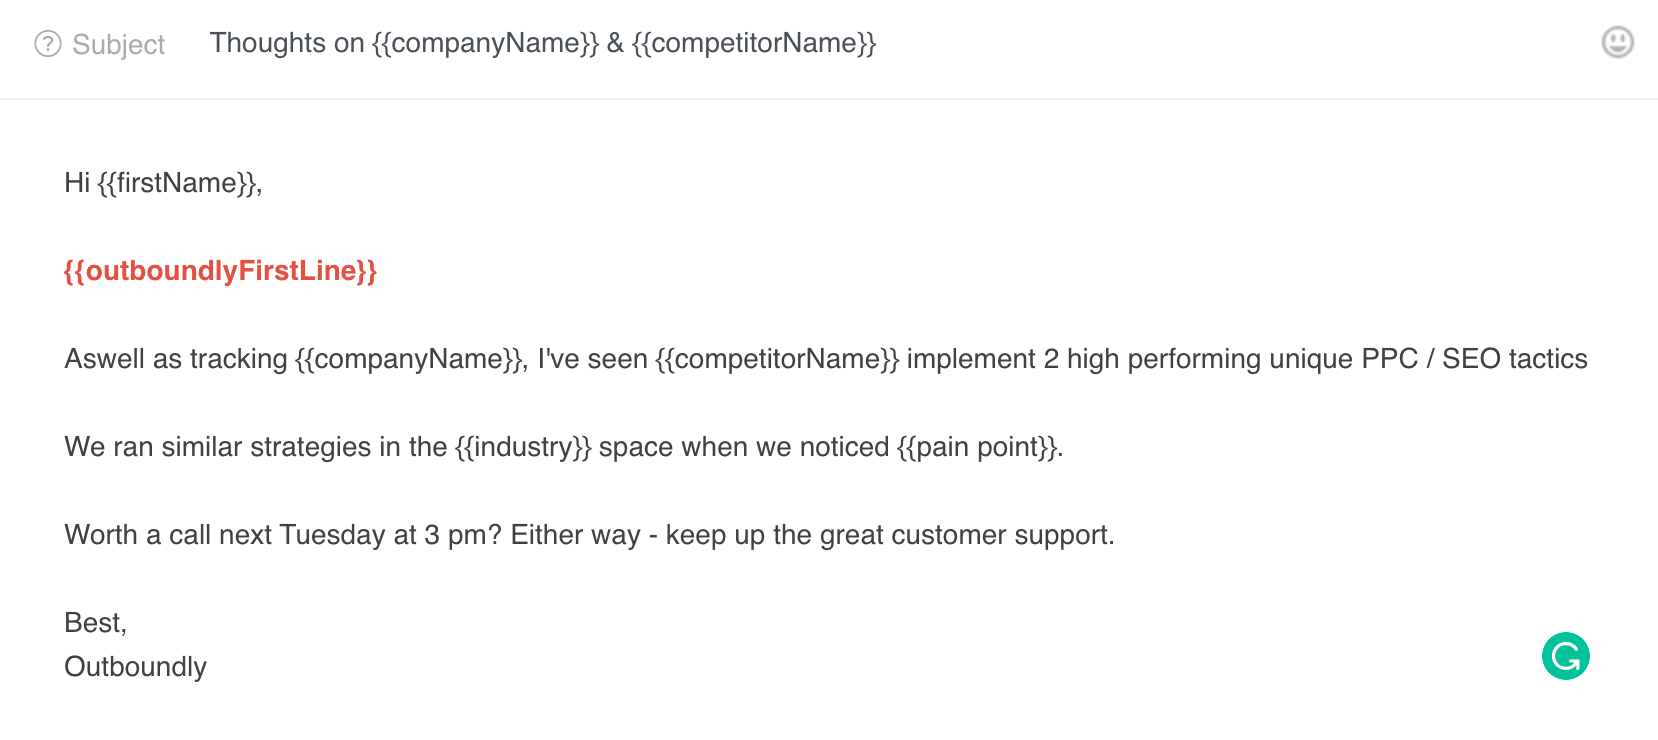 Screenshot of how to use Outboundly's icebreakers in your emails.